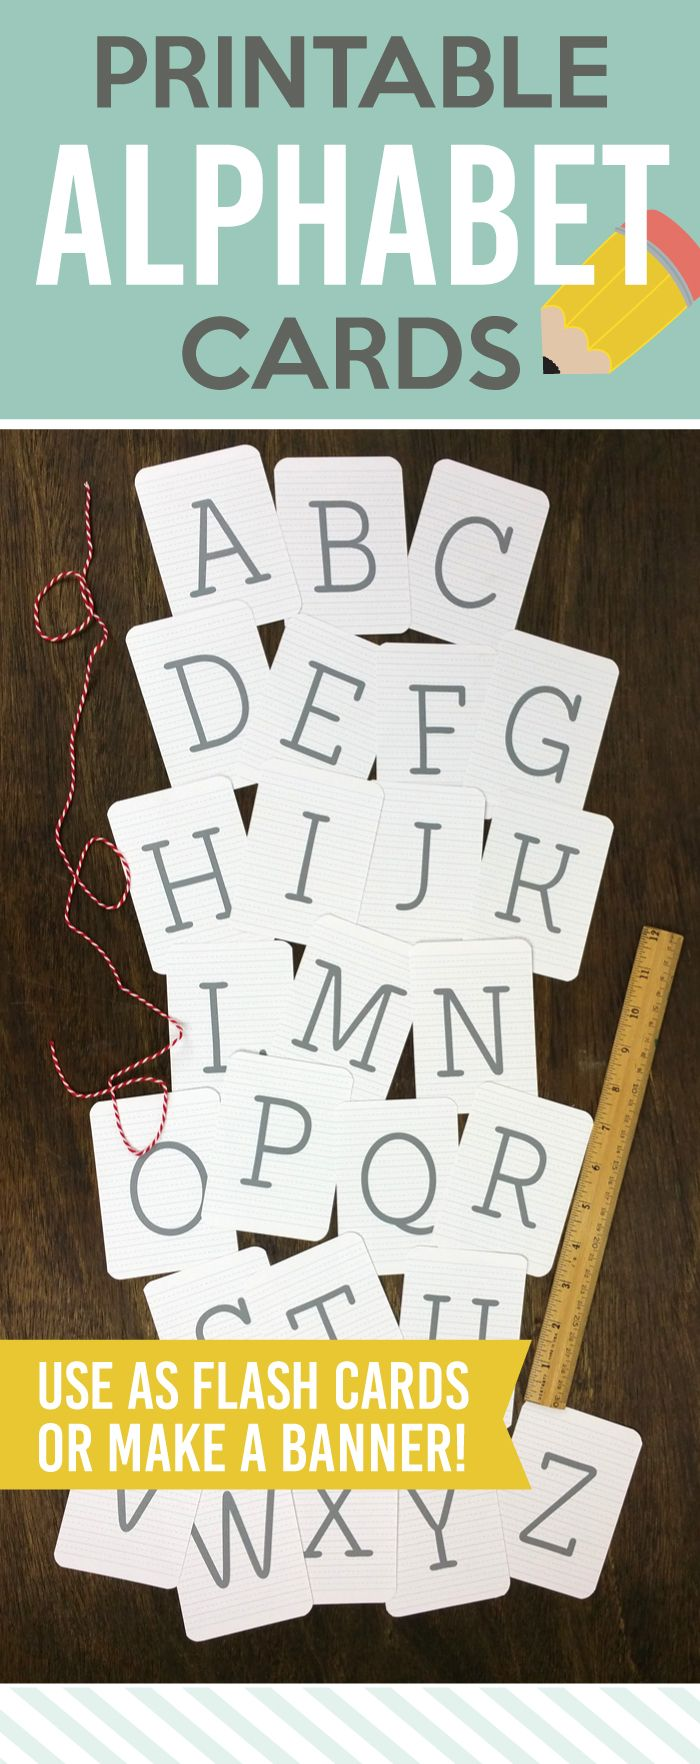 Printable Alphabet Cards - Perfect for games, the classroom, crafts, gifts and more! Paperelli for Lolly Jane